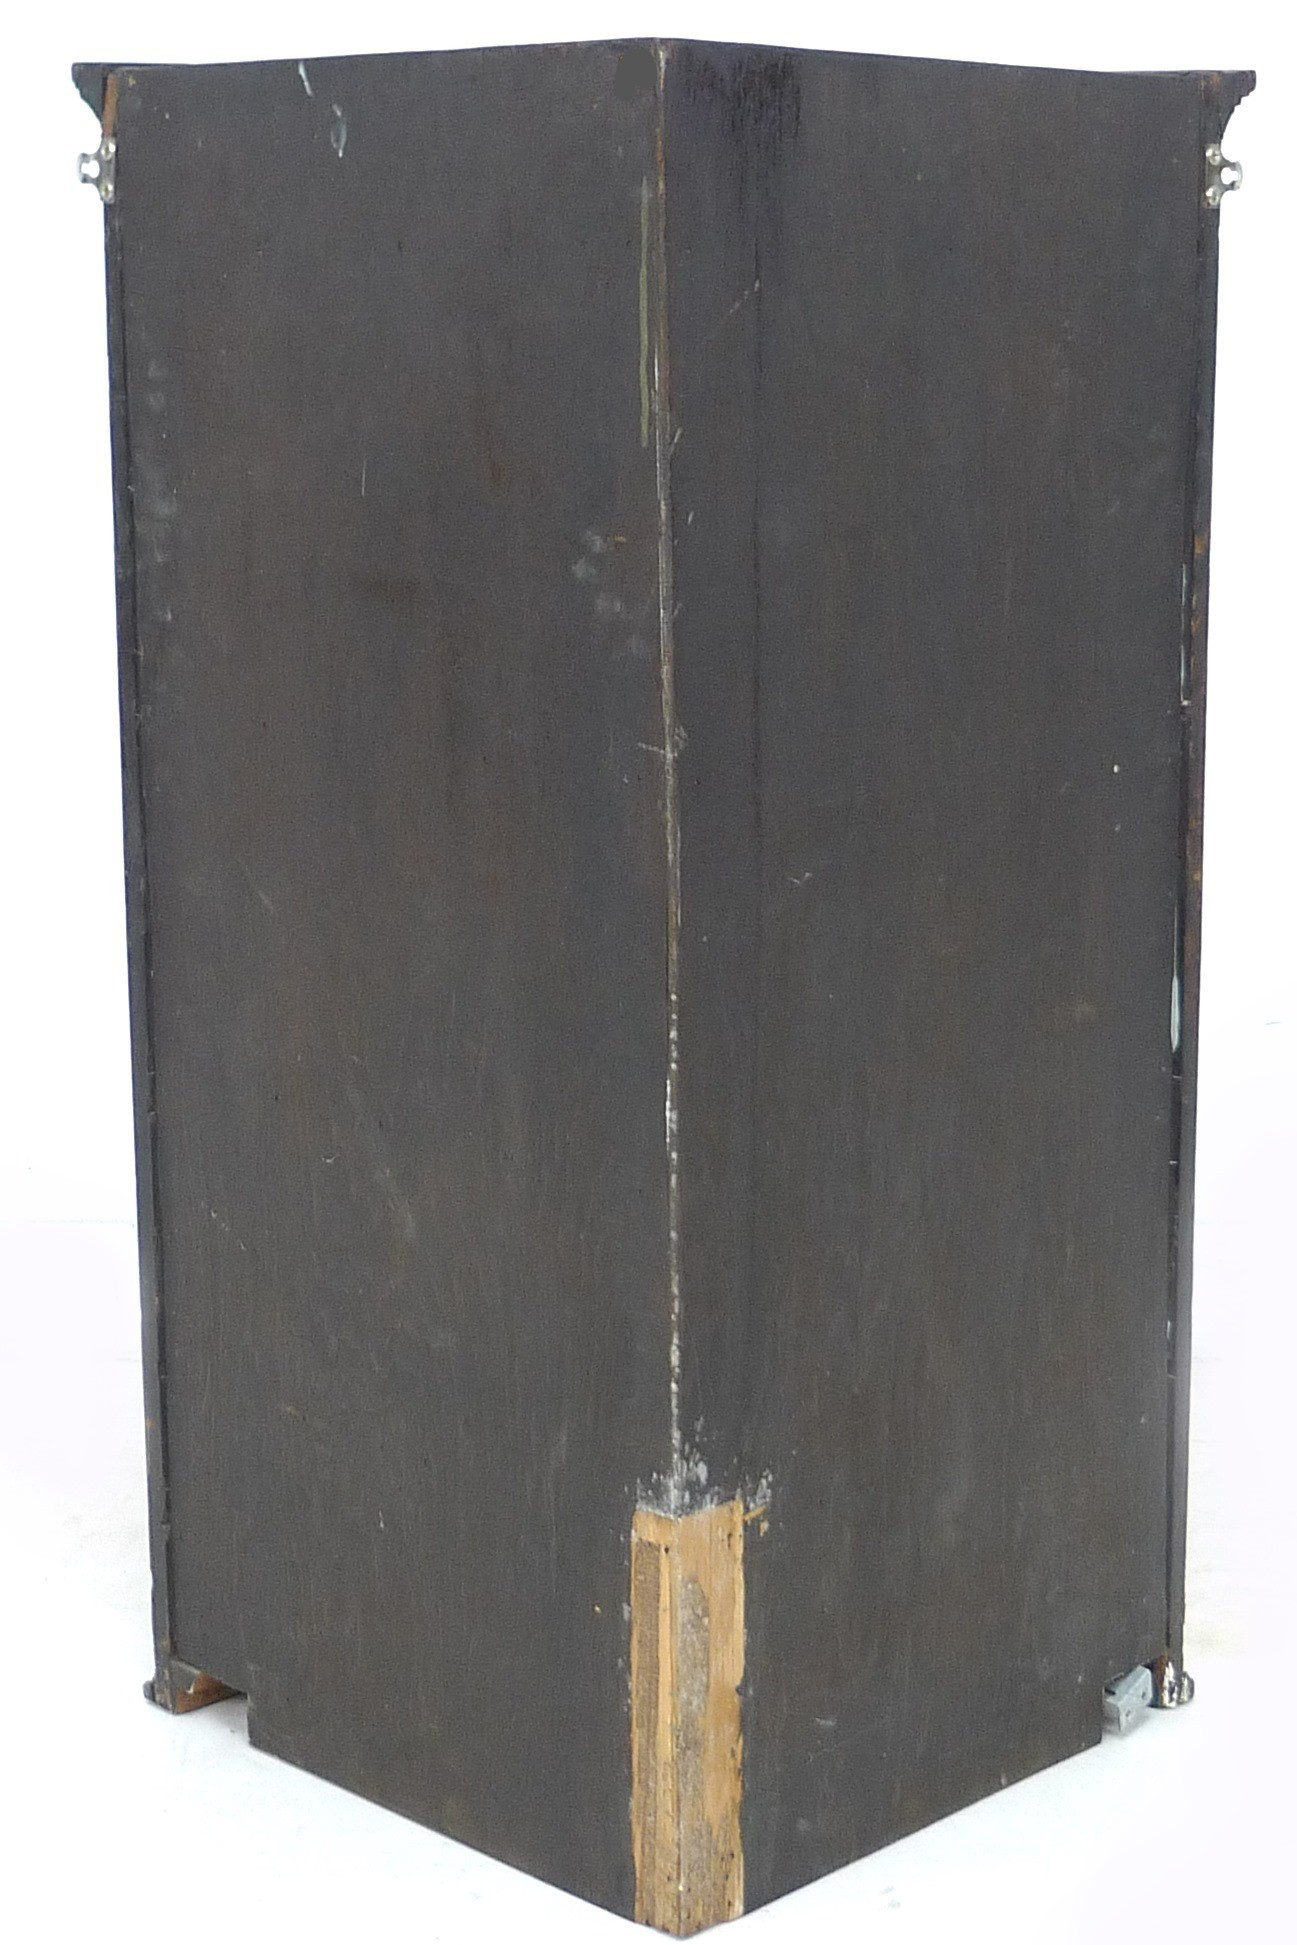 A George III mahogany bow fronted corner cupboard, with green painted interior, 72 by 50 by 106cm - Image 3 of 4